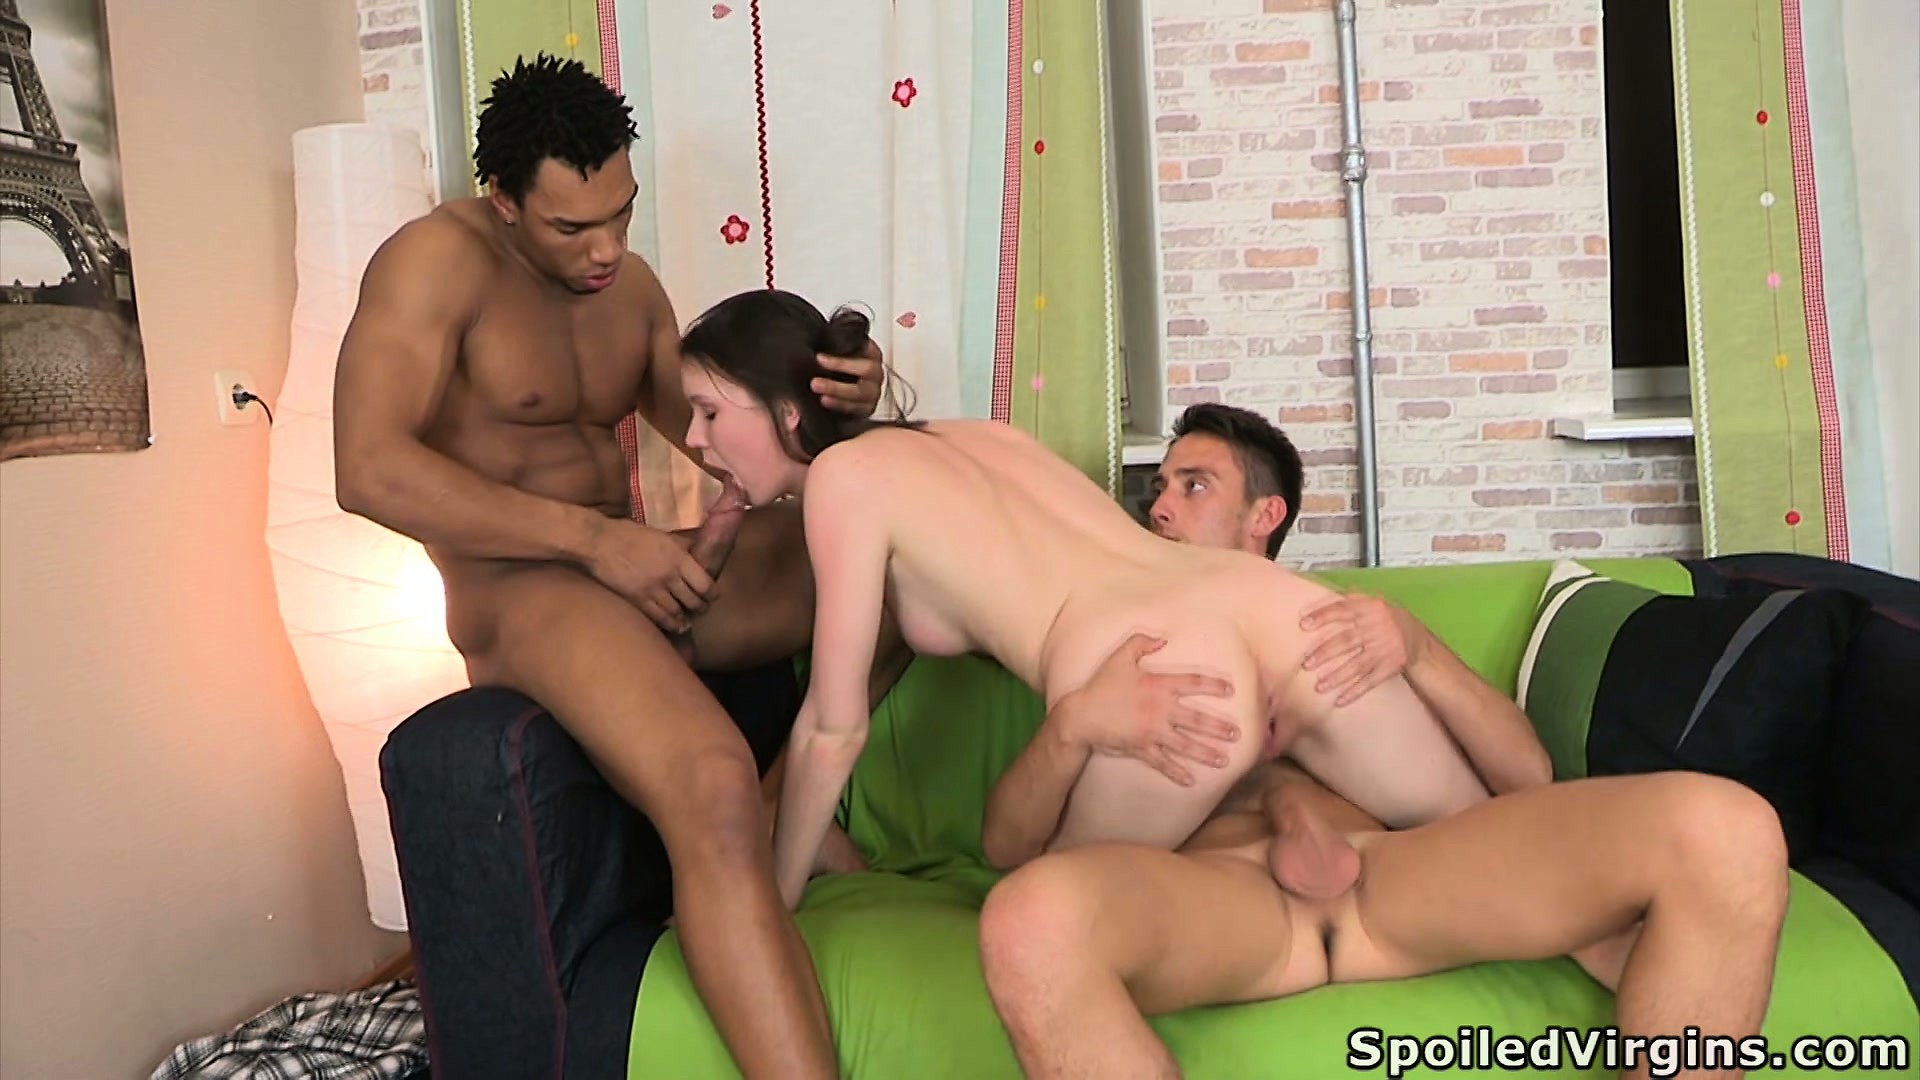 Porn Tube of She Rides His Big Black Cock And Sucks On The Other Dude, Then They Switch